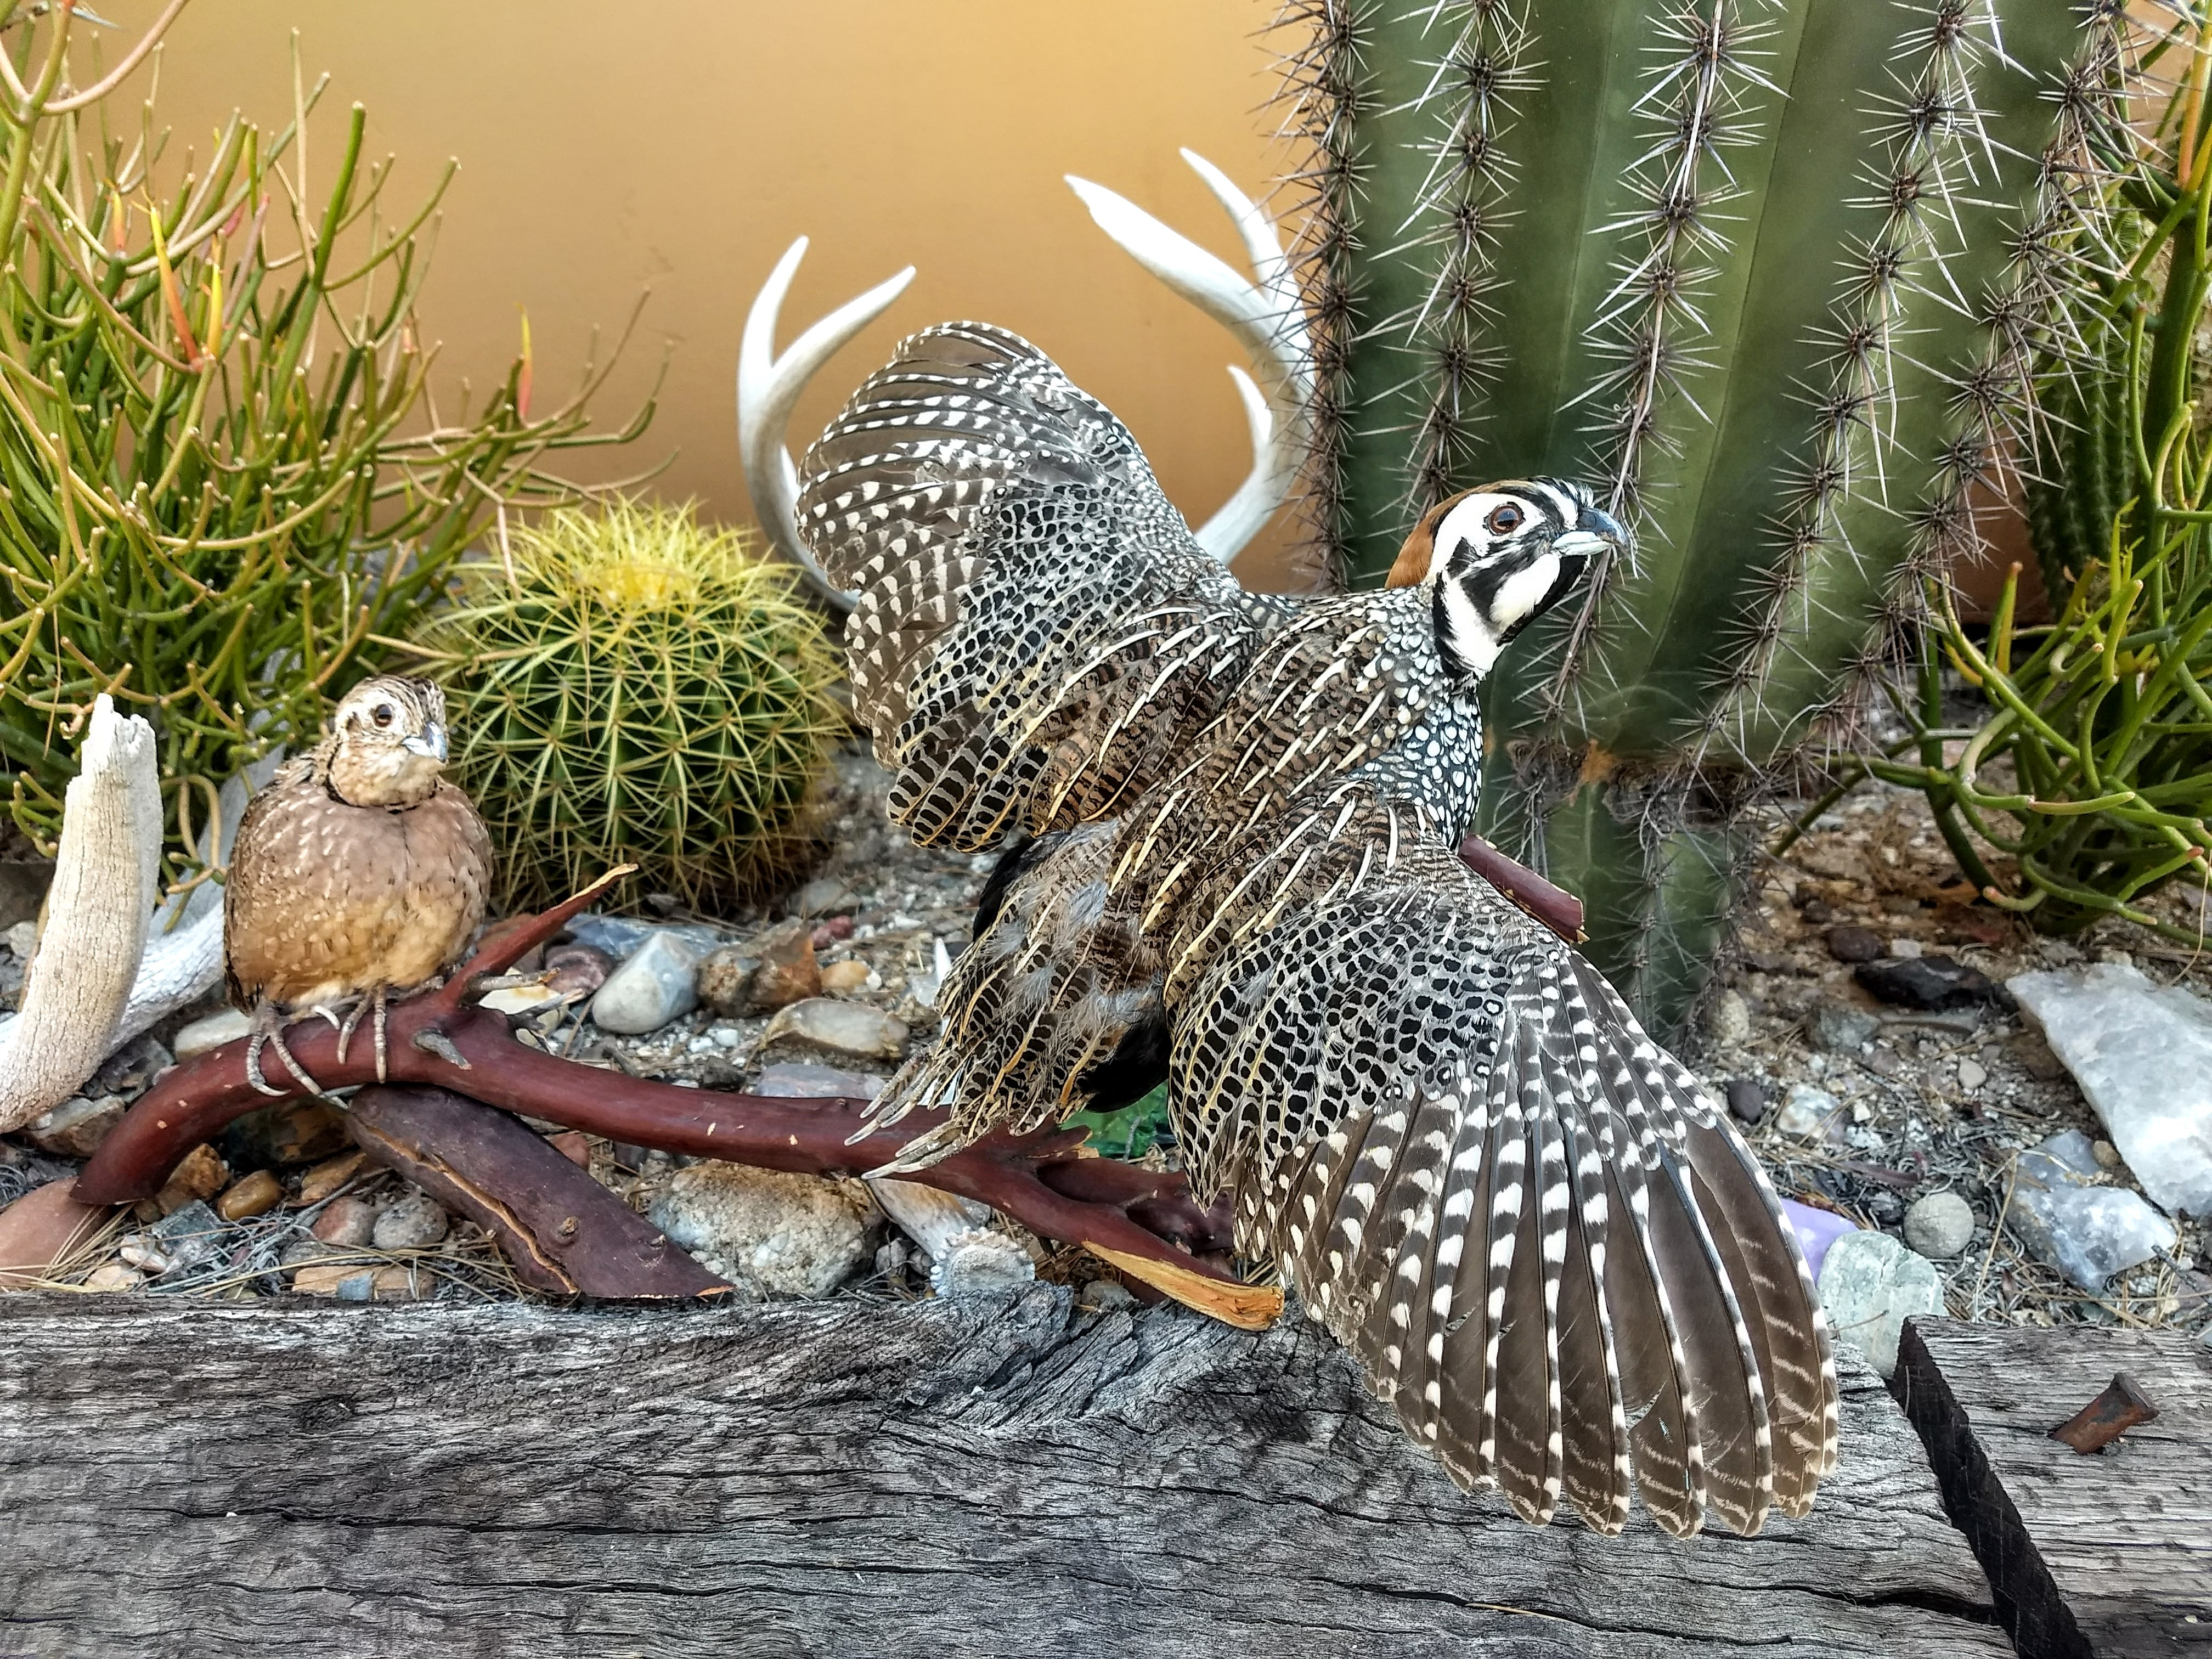 Mearns quail taxidermy